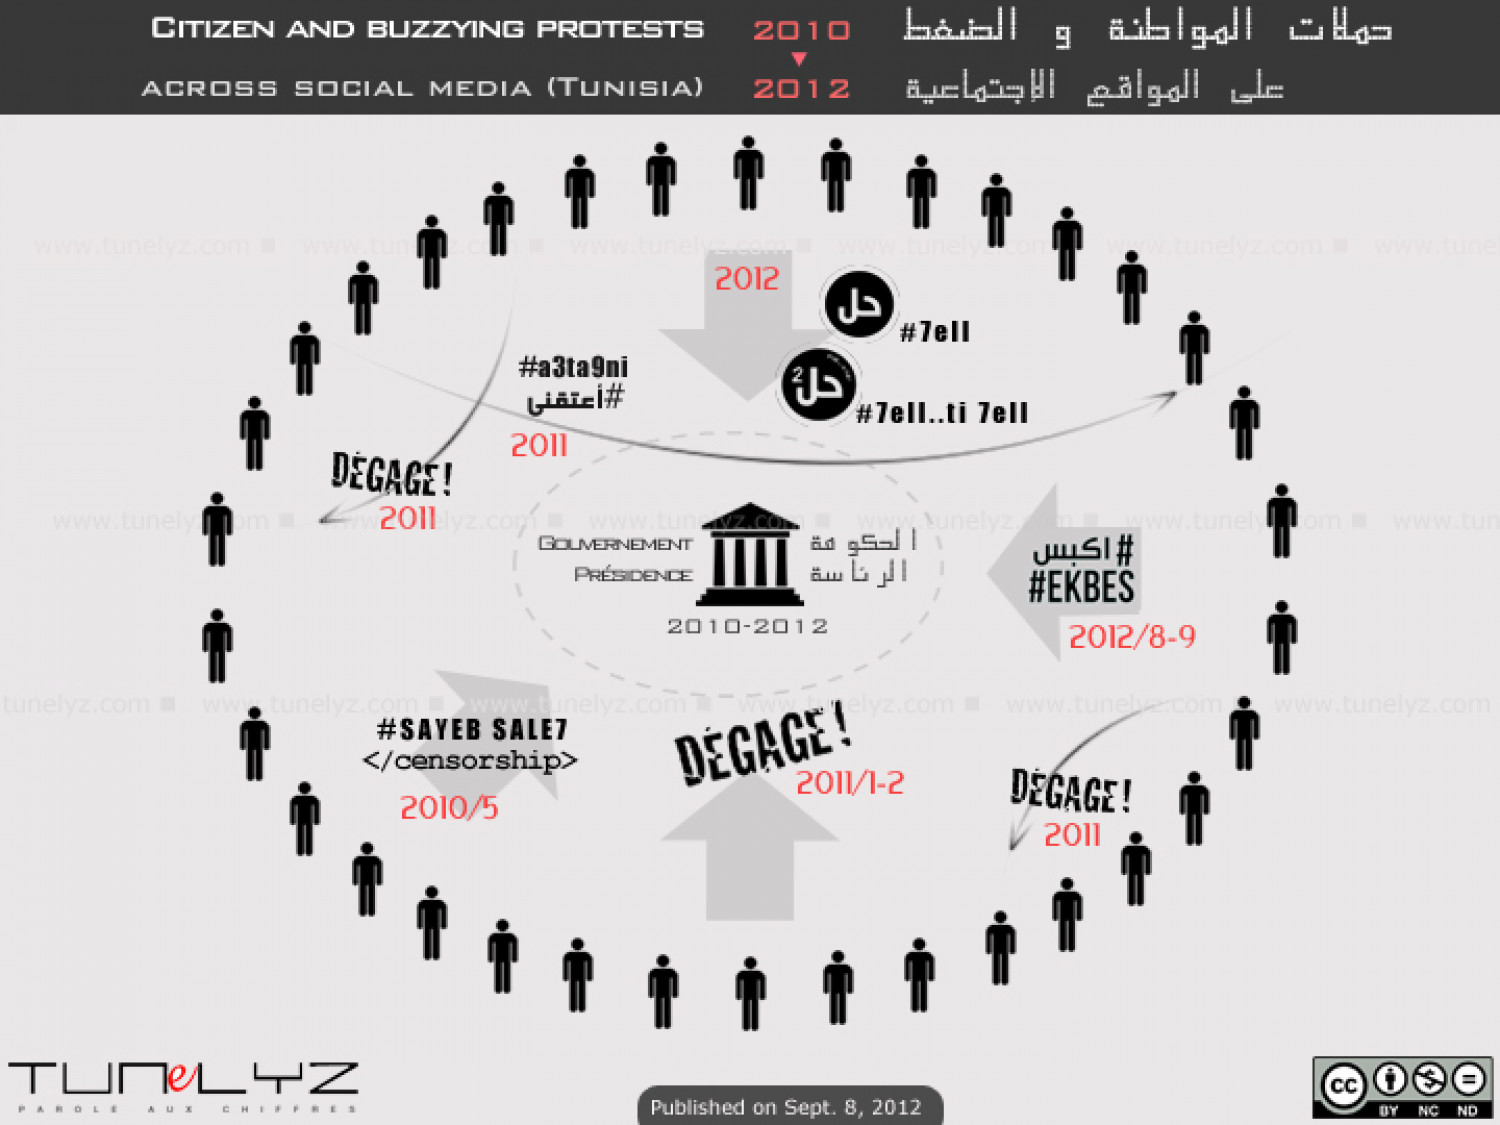 Buzzing Citizen Protests across Social Media Infographic